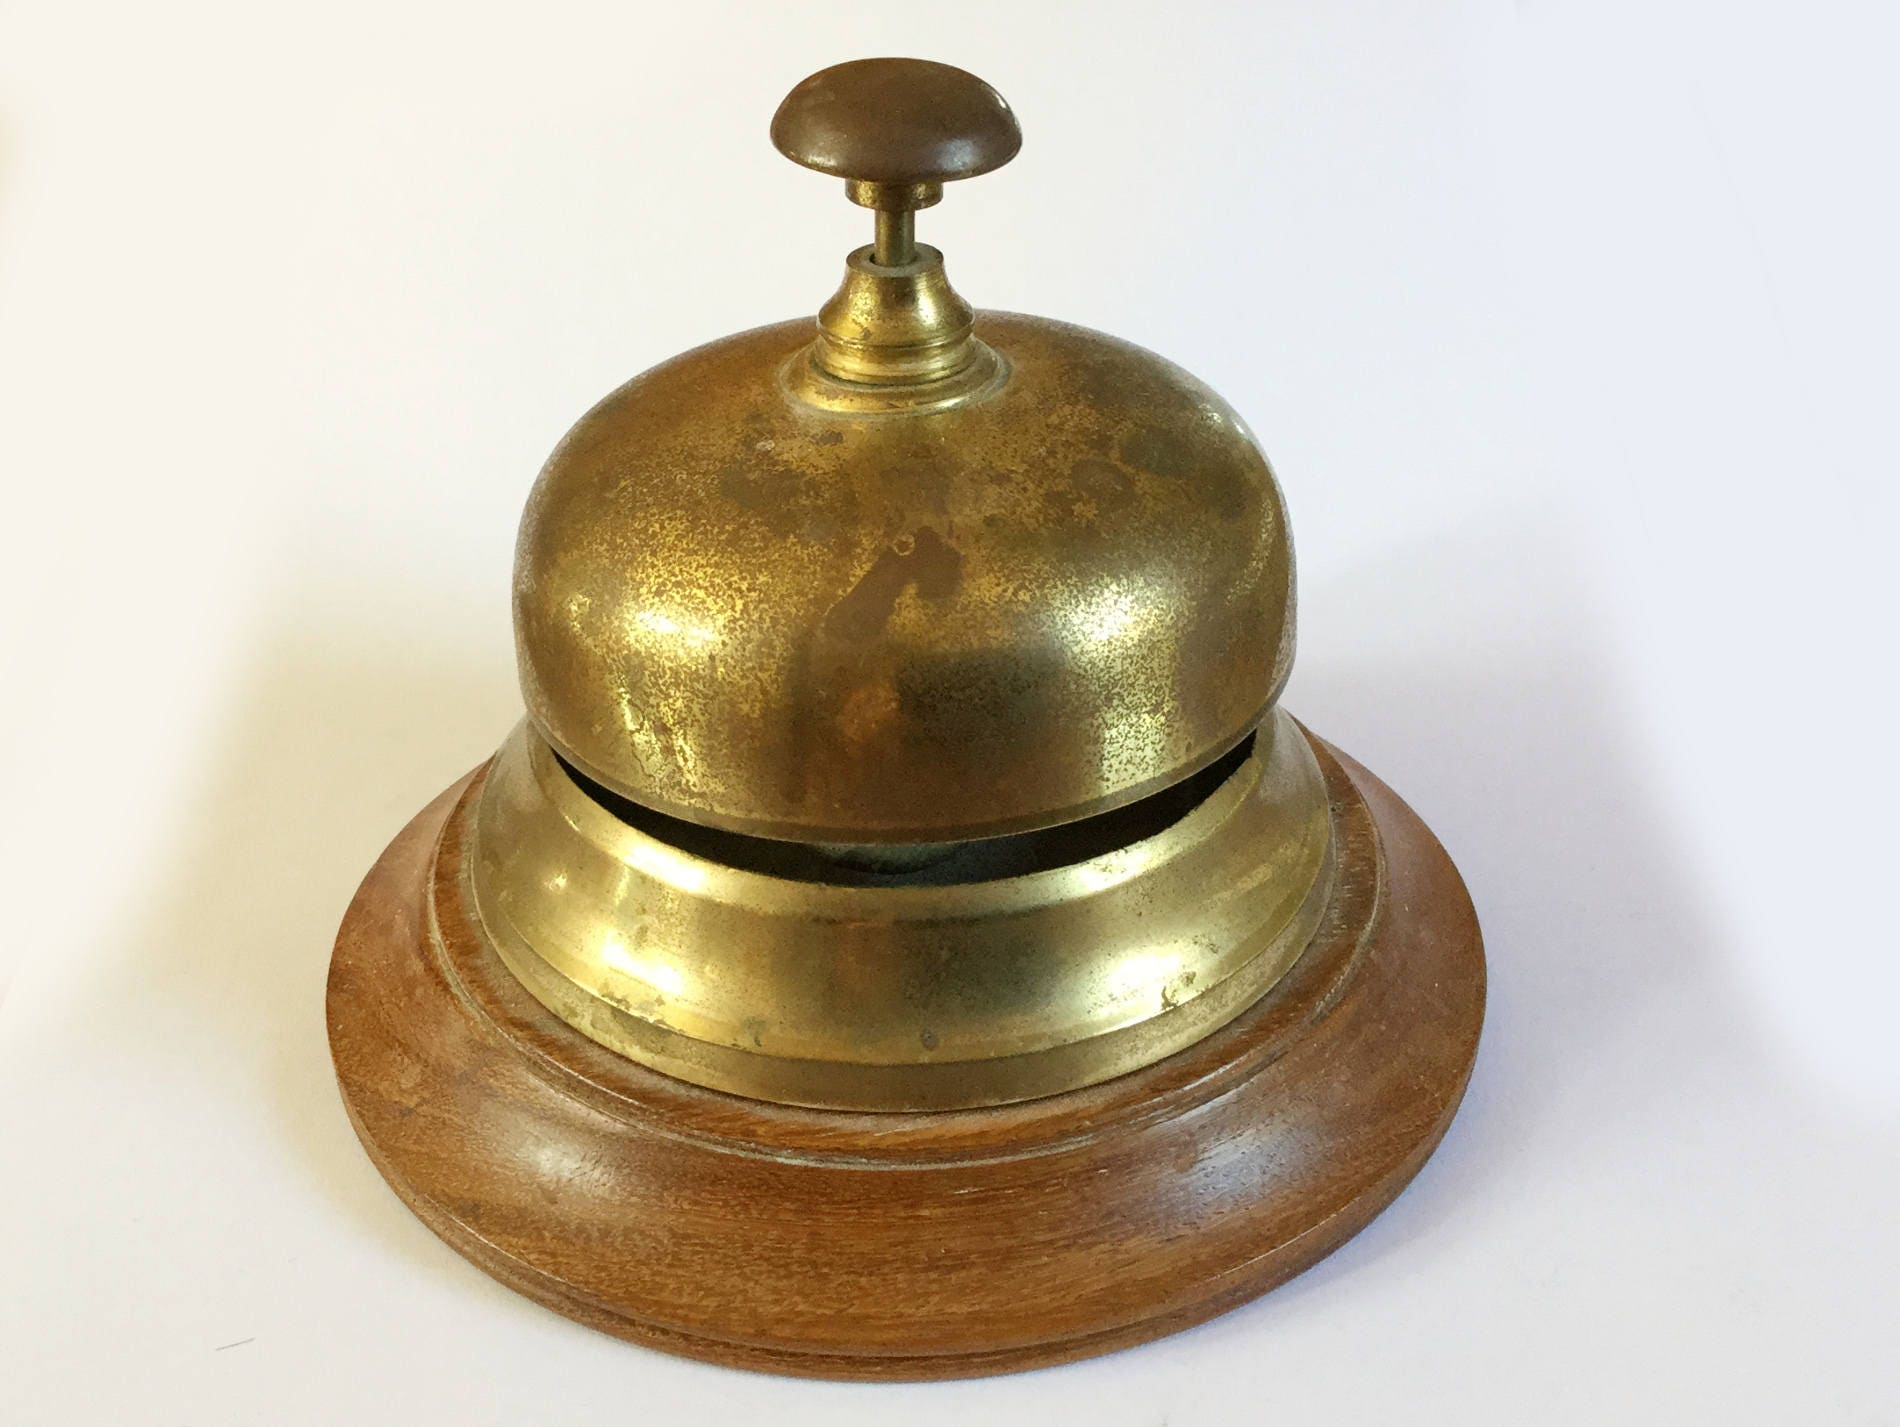 Vintage brass and wood desk hotel reception bell Round base Distressed worn metal